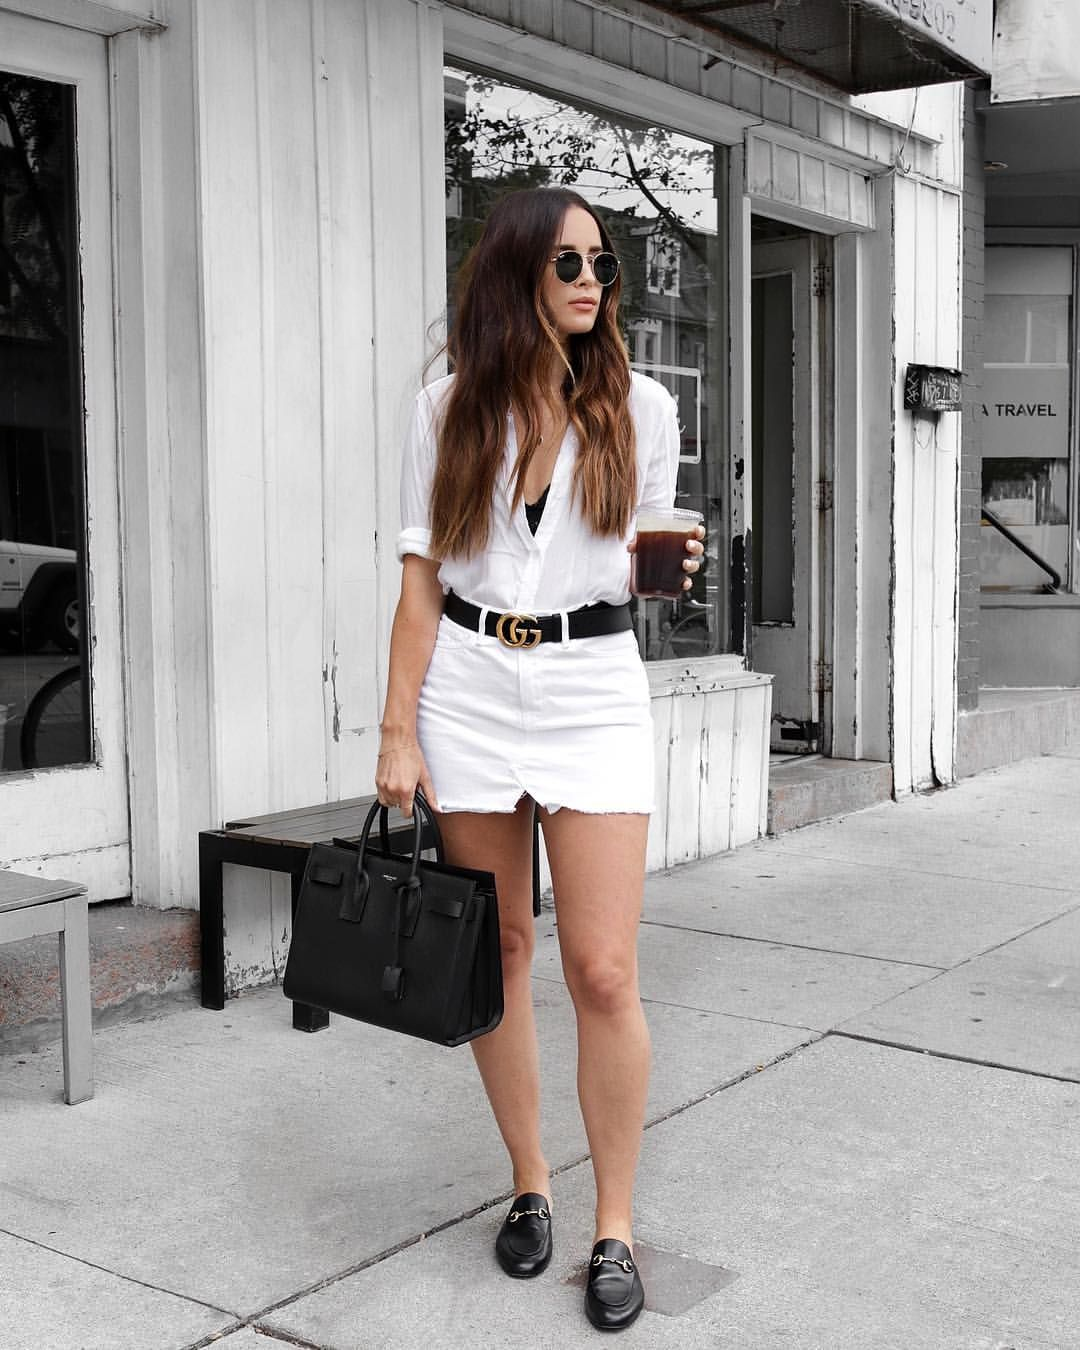 6a61a2150 white denim skirt and Gucci belt outfit | Dream closet in 2019 ...